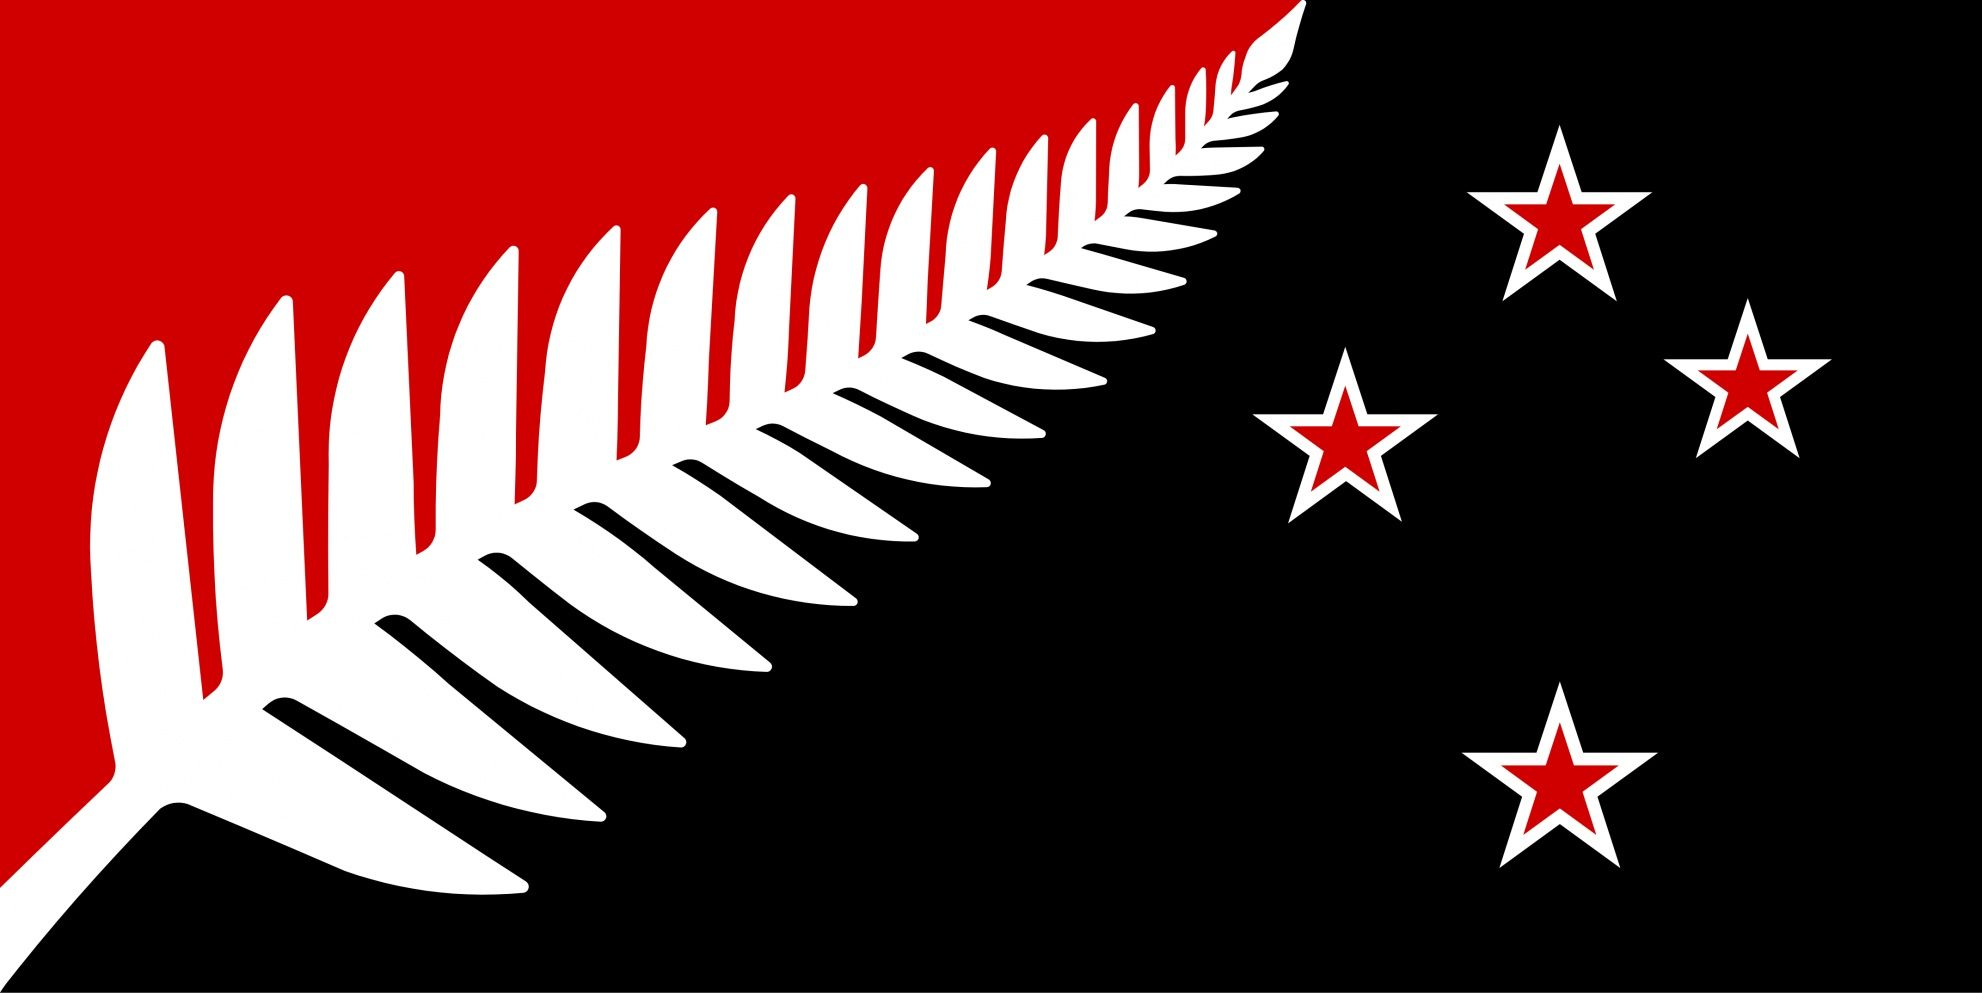 Māori Tattoos History Practice And Meanings: Silver Fern (Black,White & Red) By Kyle Lockwood From